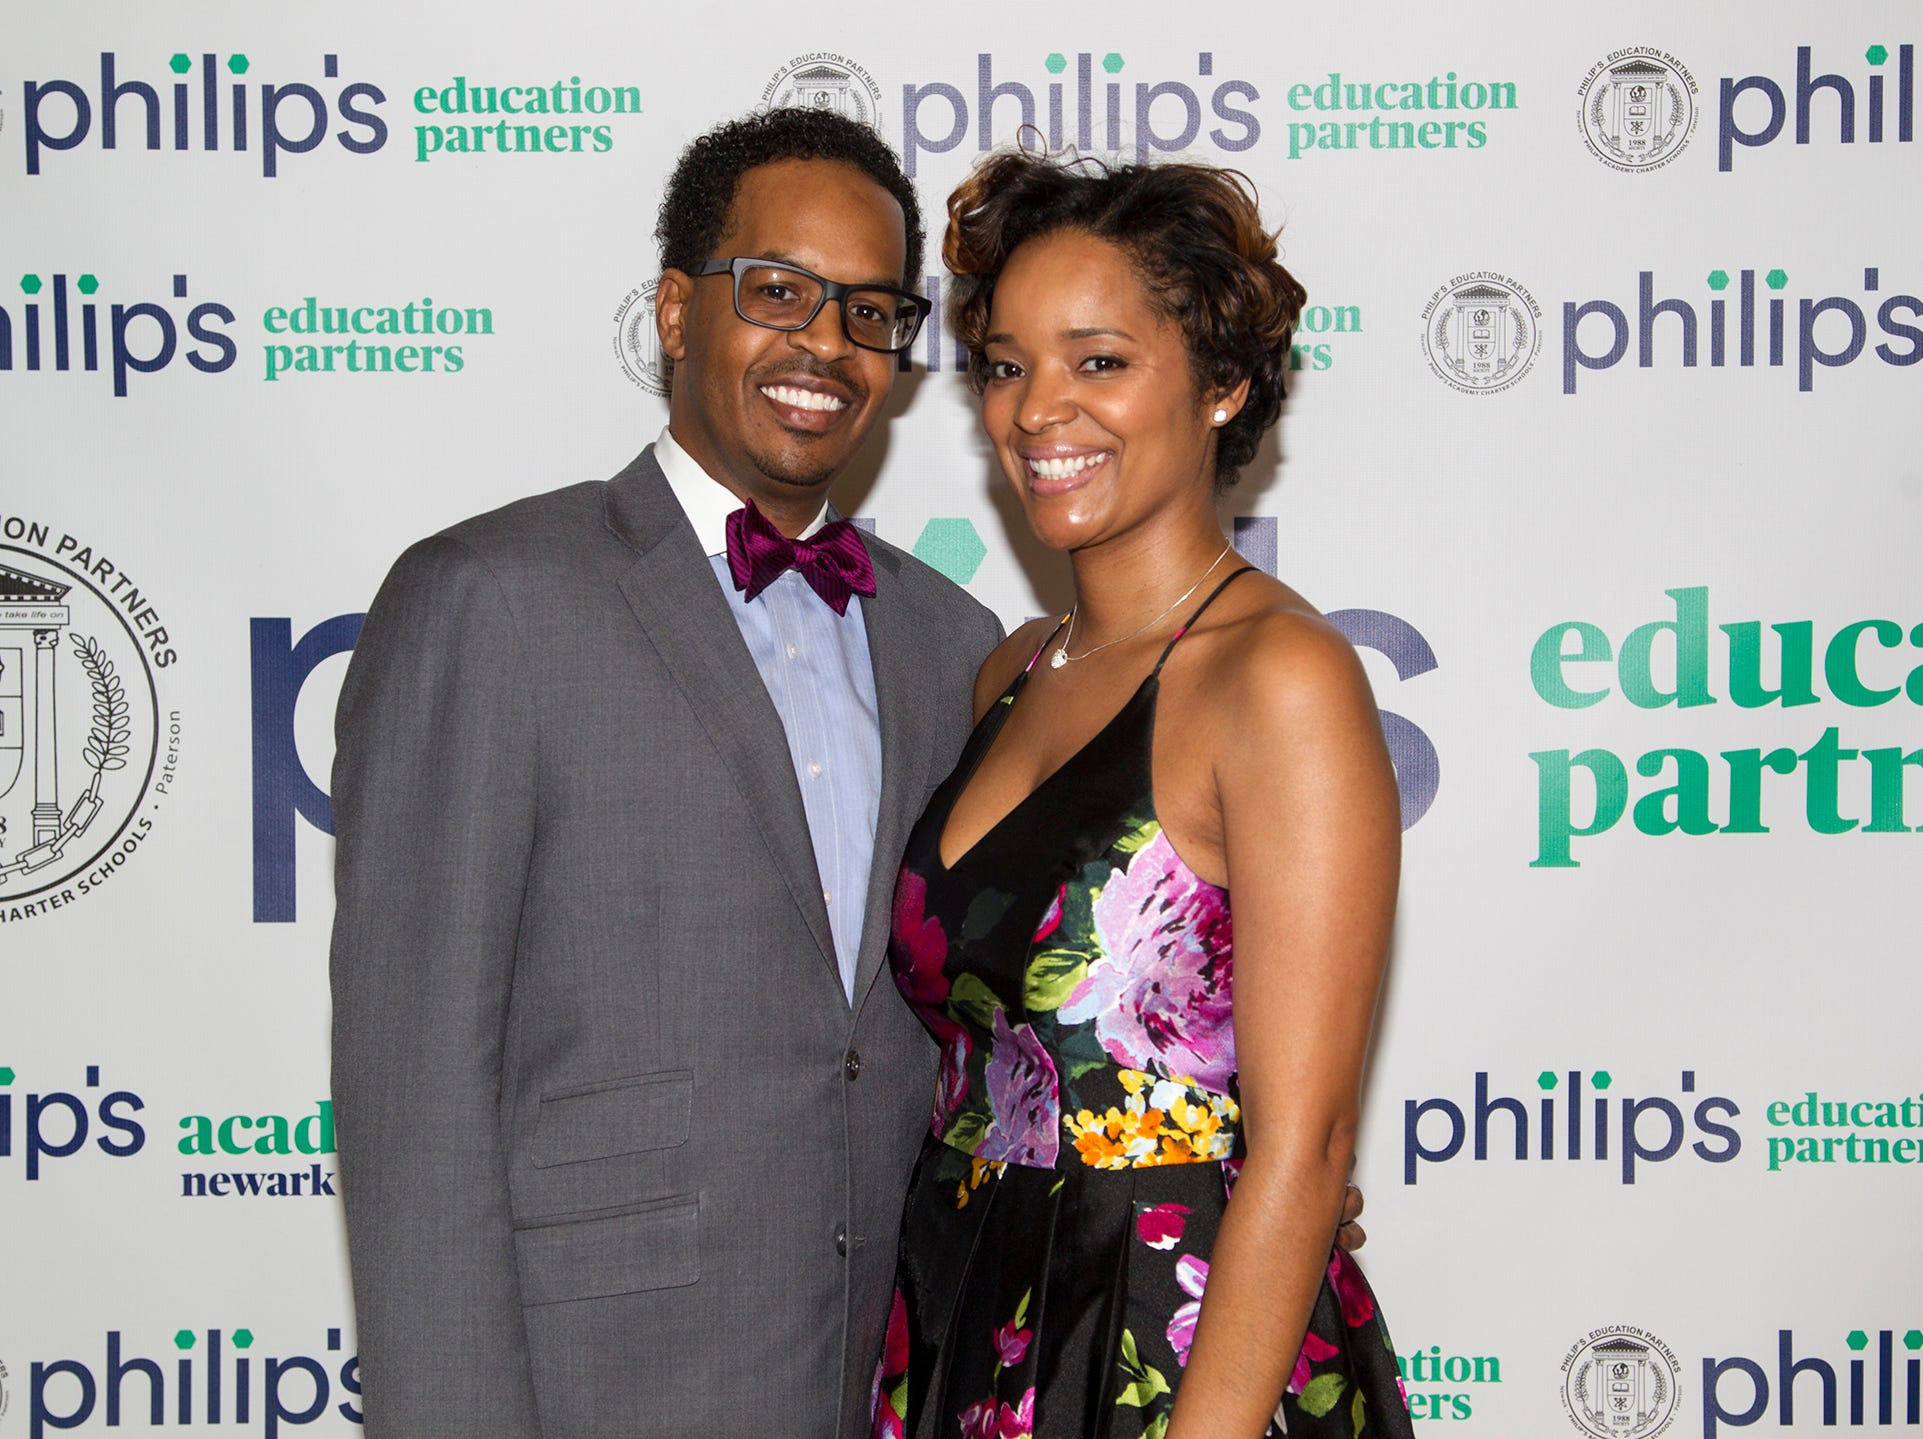 Yasmeen and Schuyler Sampson. Philip's Education Partners host The Dream Maker 30th anniversary gala at The Mezzanine in Newark 3/29/2019.